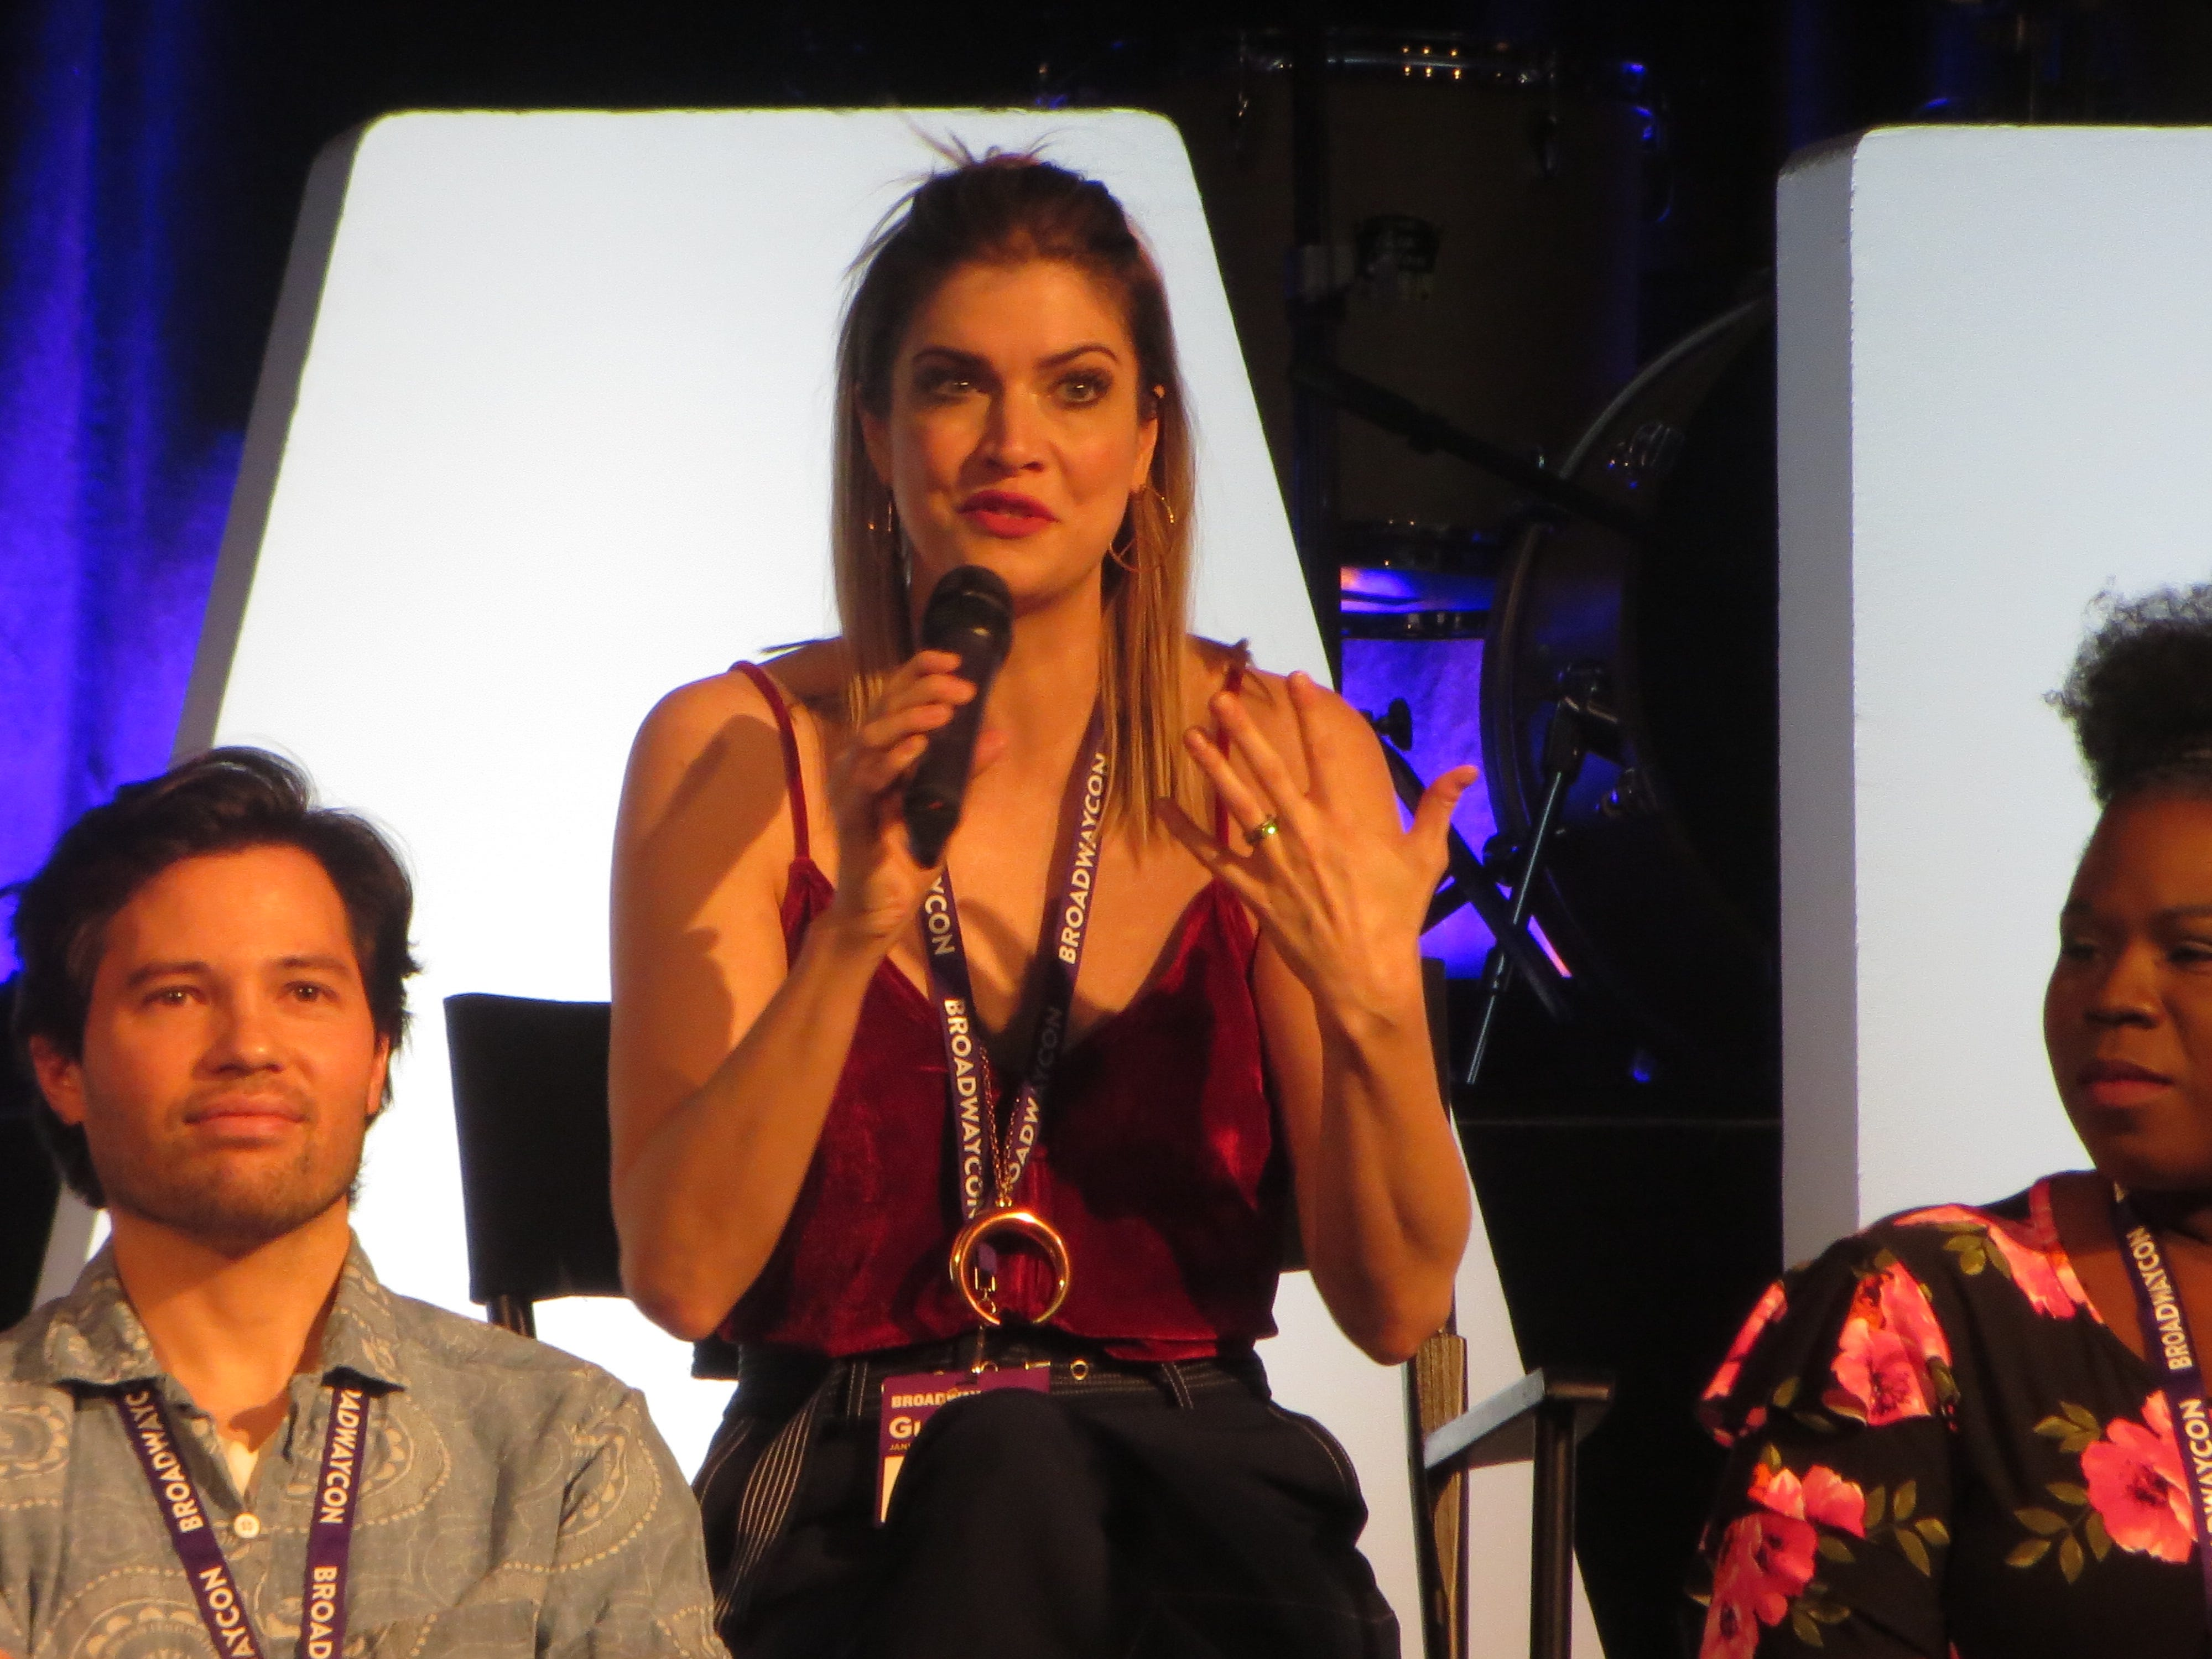 """Katlyn Carlson speaks during a """"Be More Chill"""" panel at BroadwayCon 2019, held Jan. 11 to 13, 2019, at the New York Hilton Midtown in Manhattan."""